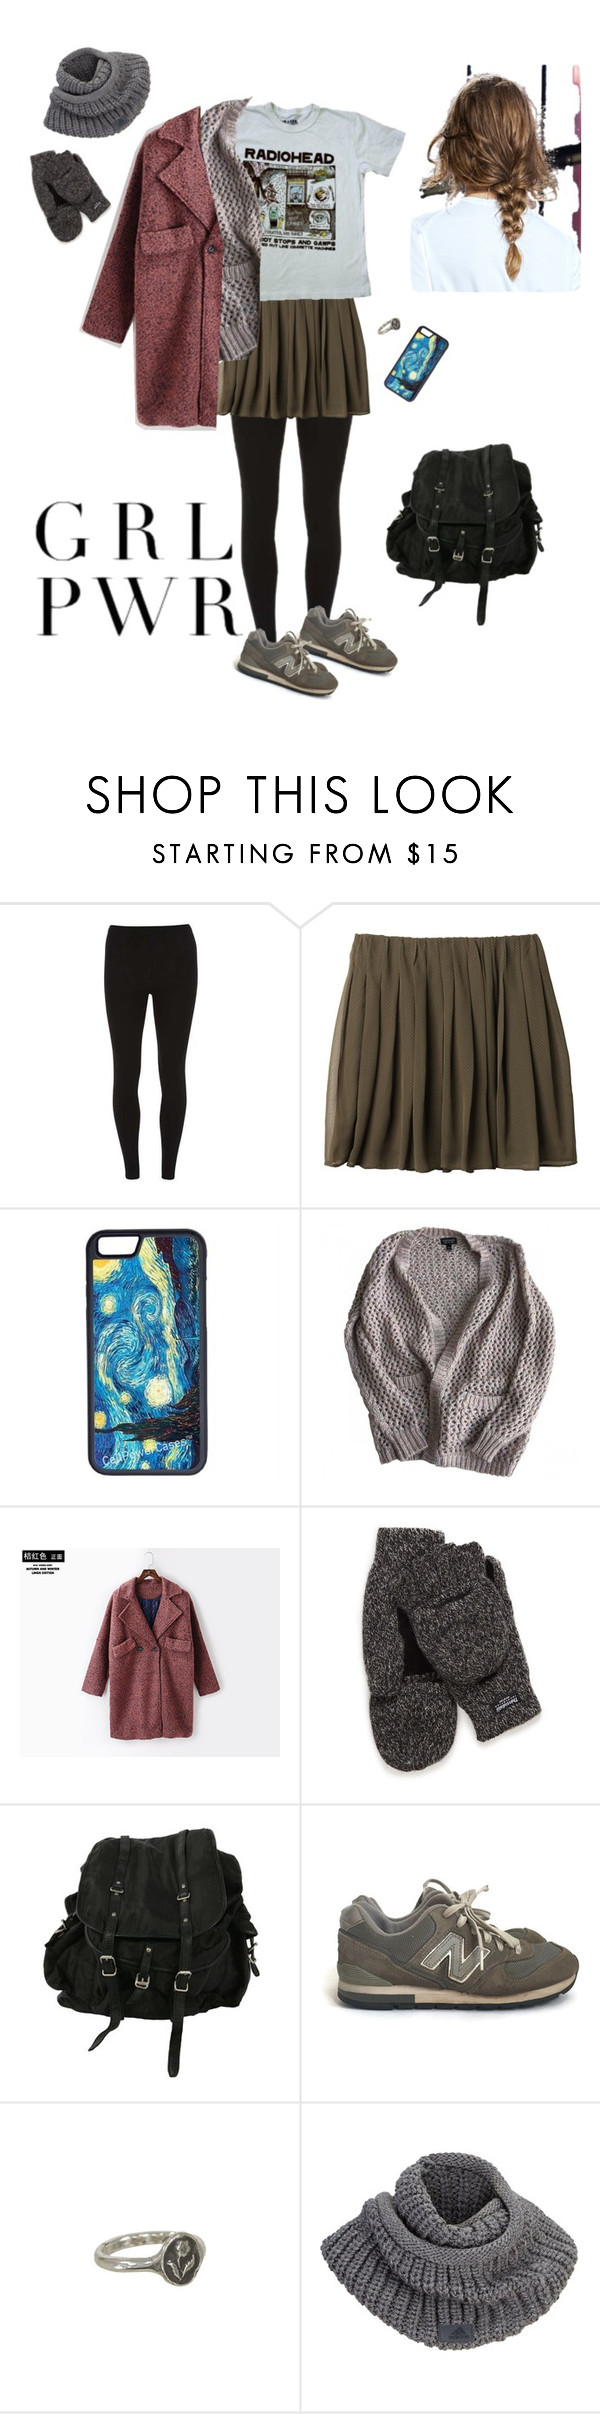 """""""What I'm wearing"""" by prusius on Polyvore featuring moda, Dorothy Perkins, Uniqlo, CellPowerCases, Topshop, X:Y, AllSaints, New Balance, Pyrrha y adidas"""